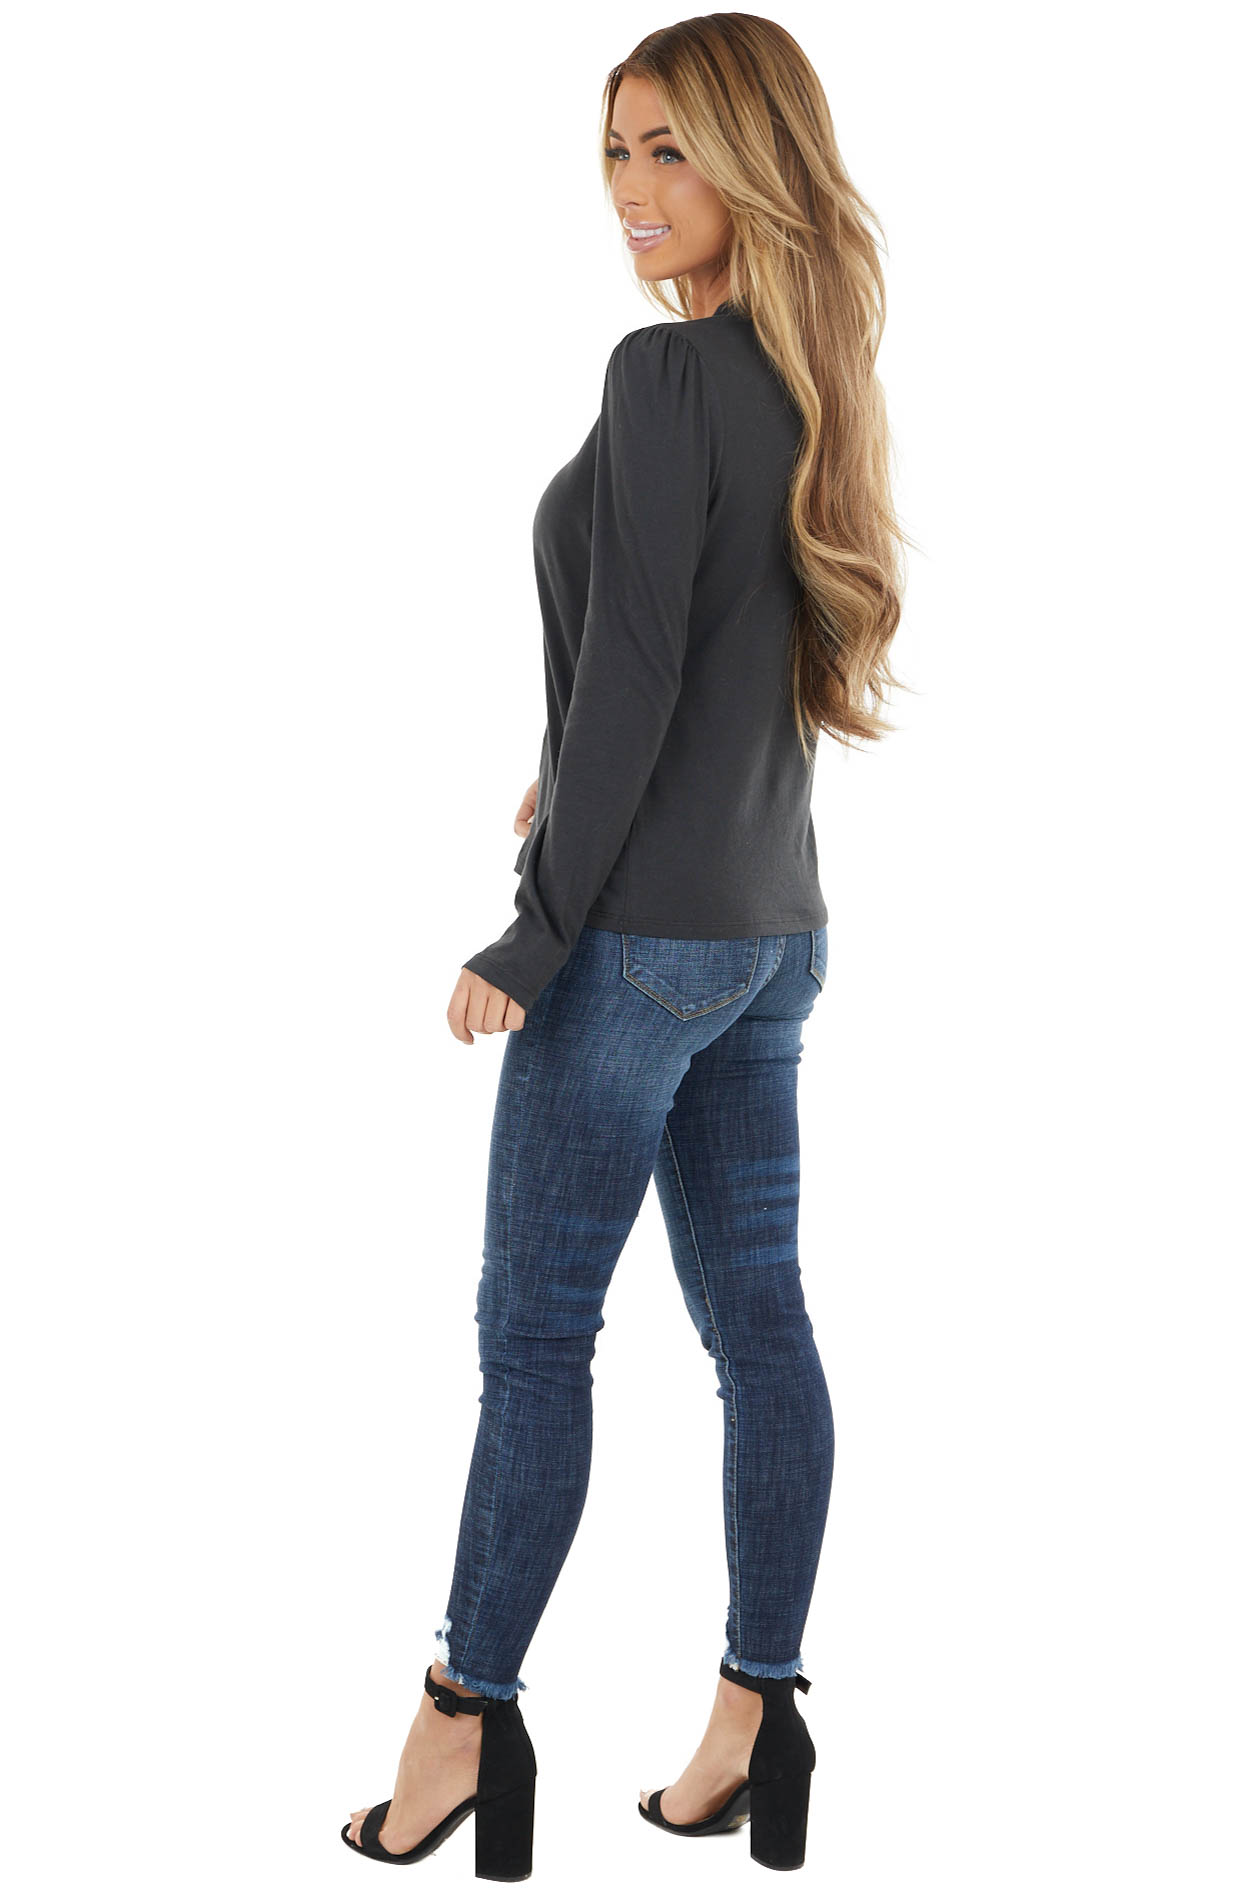 Black Mock Neck Top with Long Sleeves and Puffy Shoulders